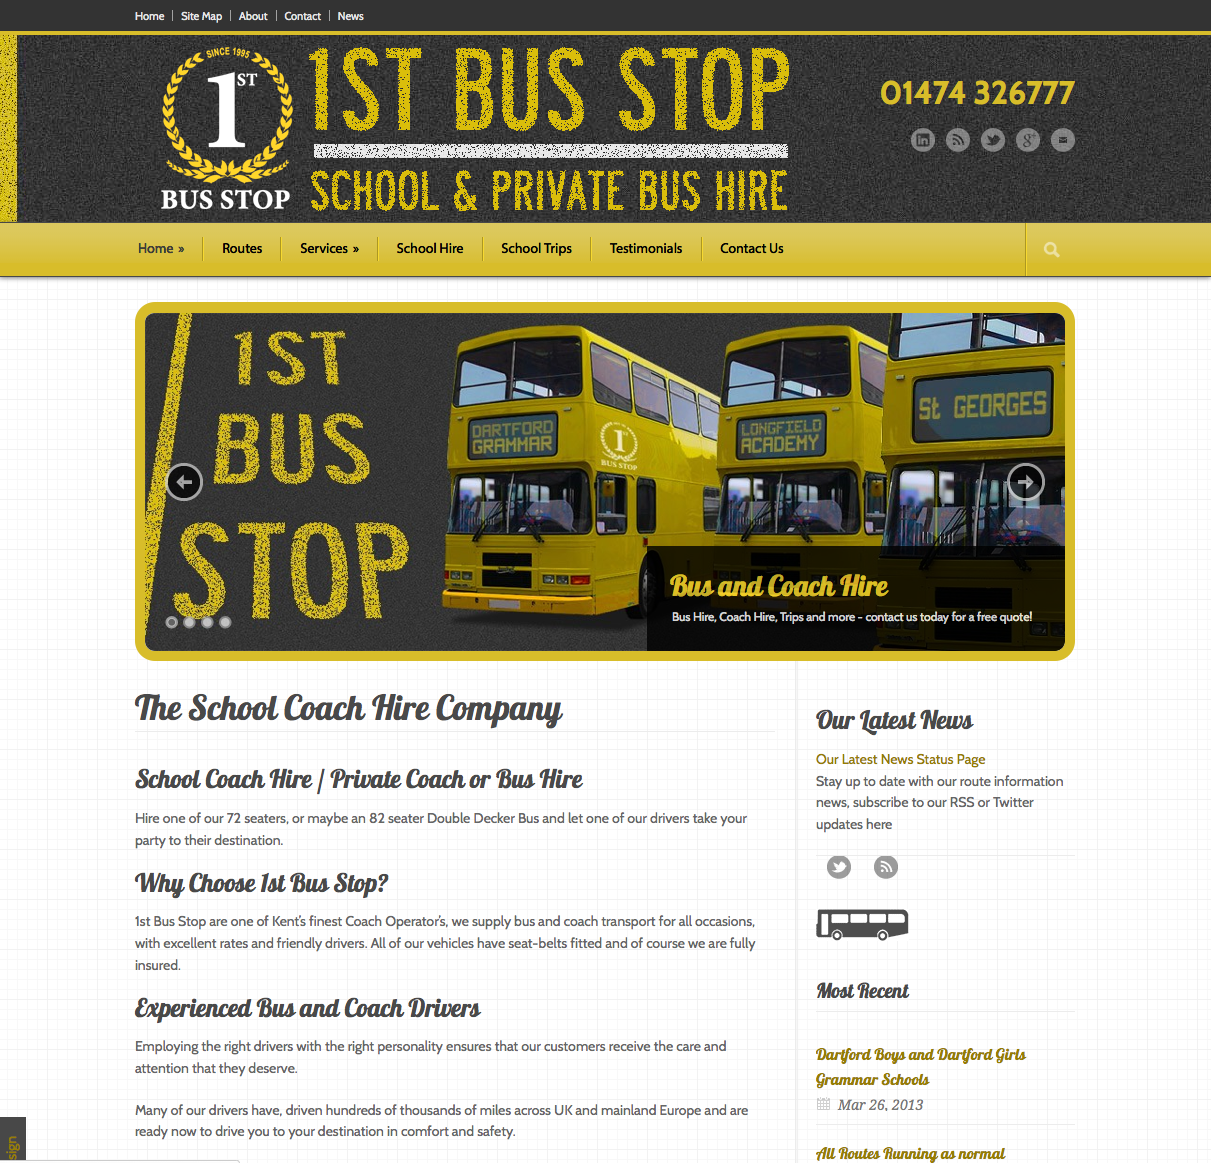 1st Bus Stop